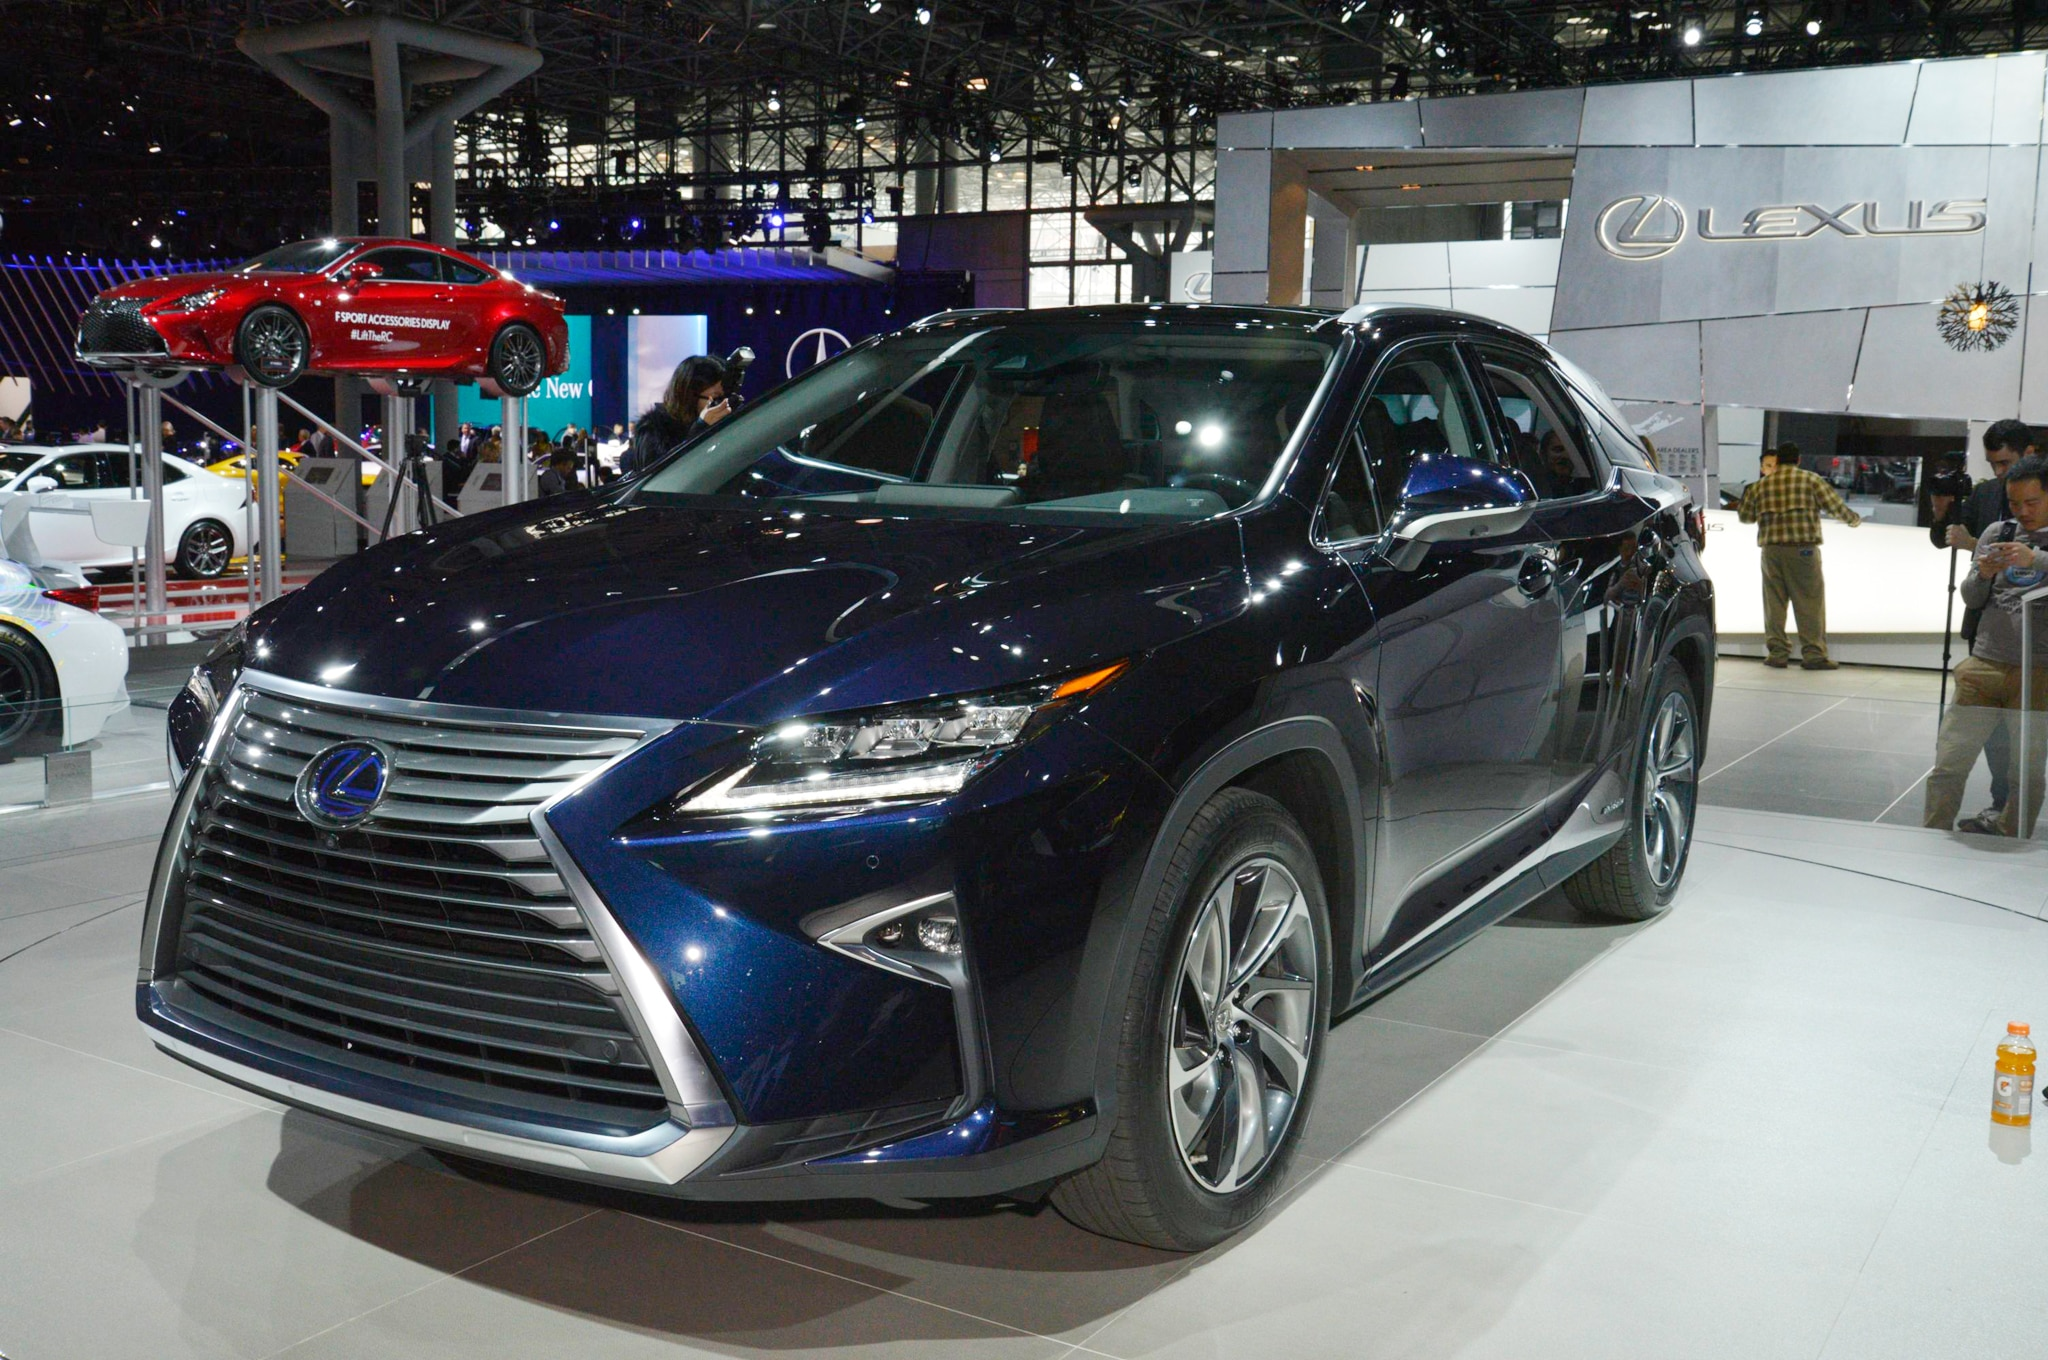 2016 Lexus RX Arrives in New York